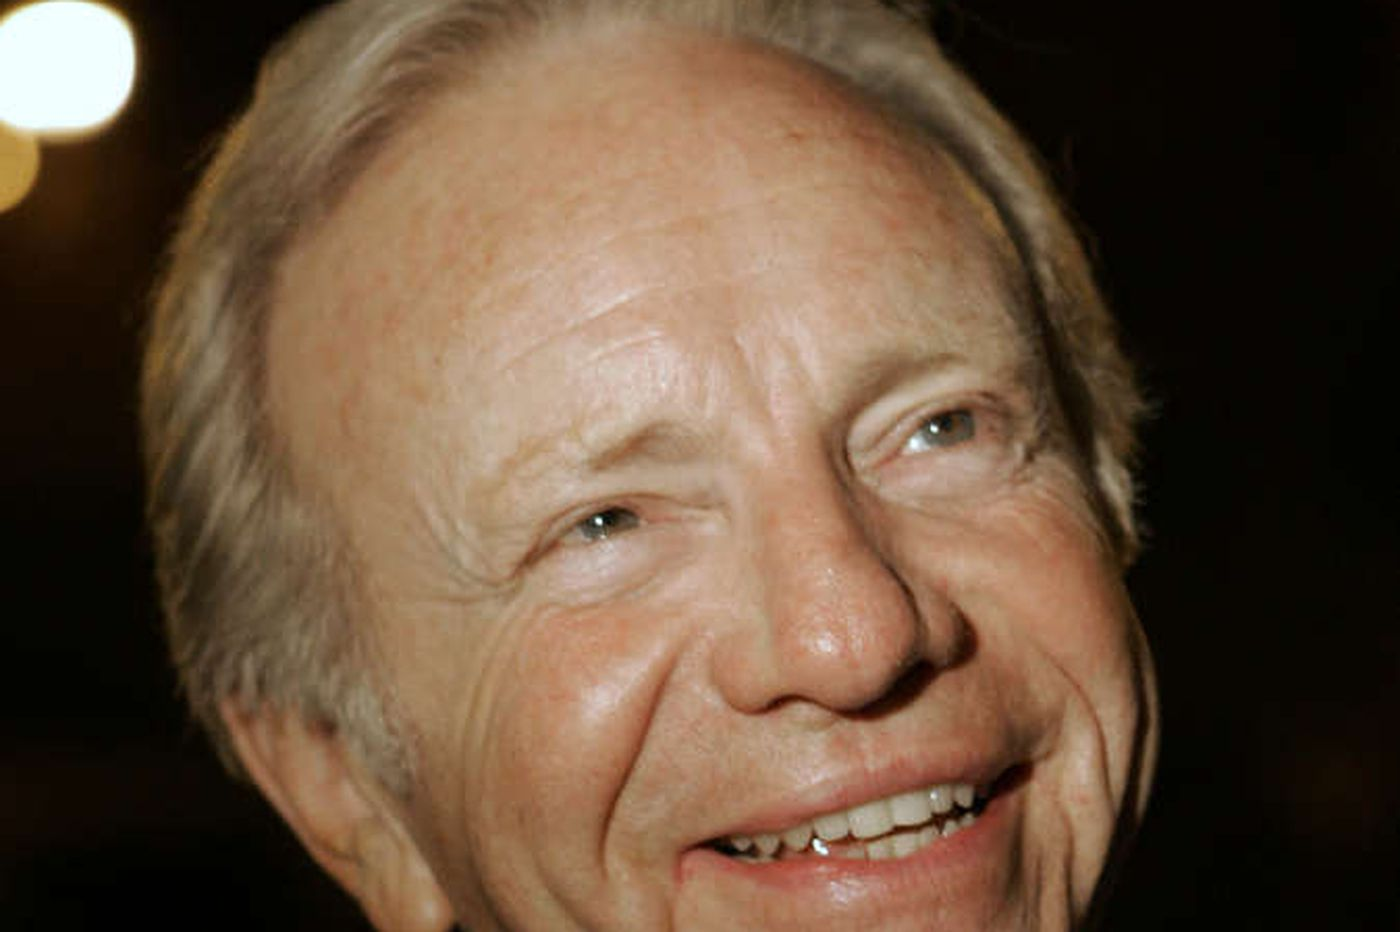 Lieberman predicts fall over cliff